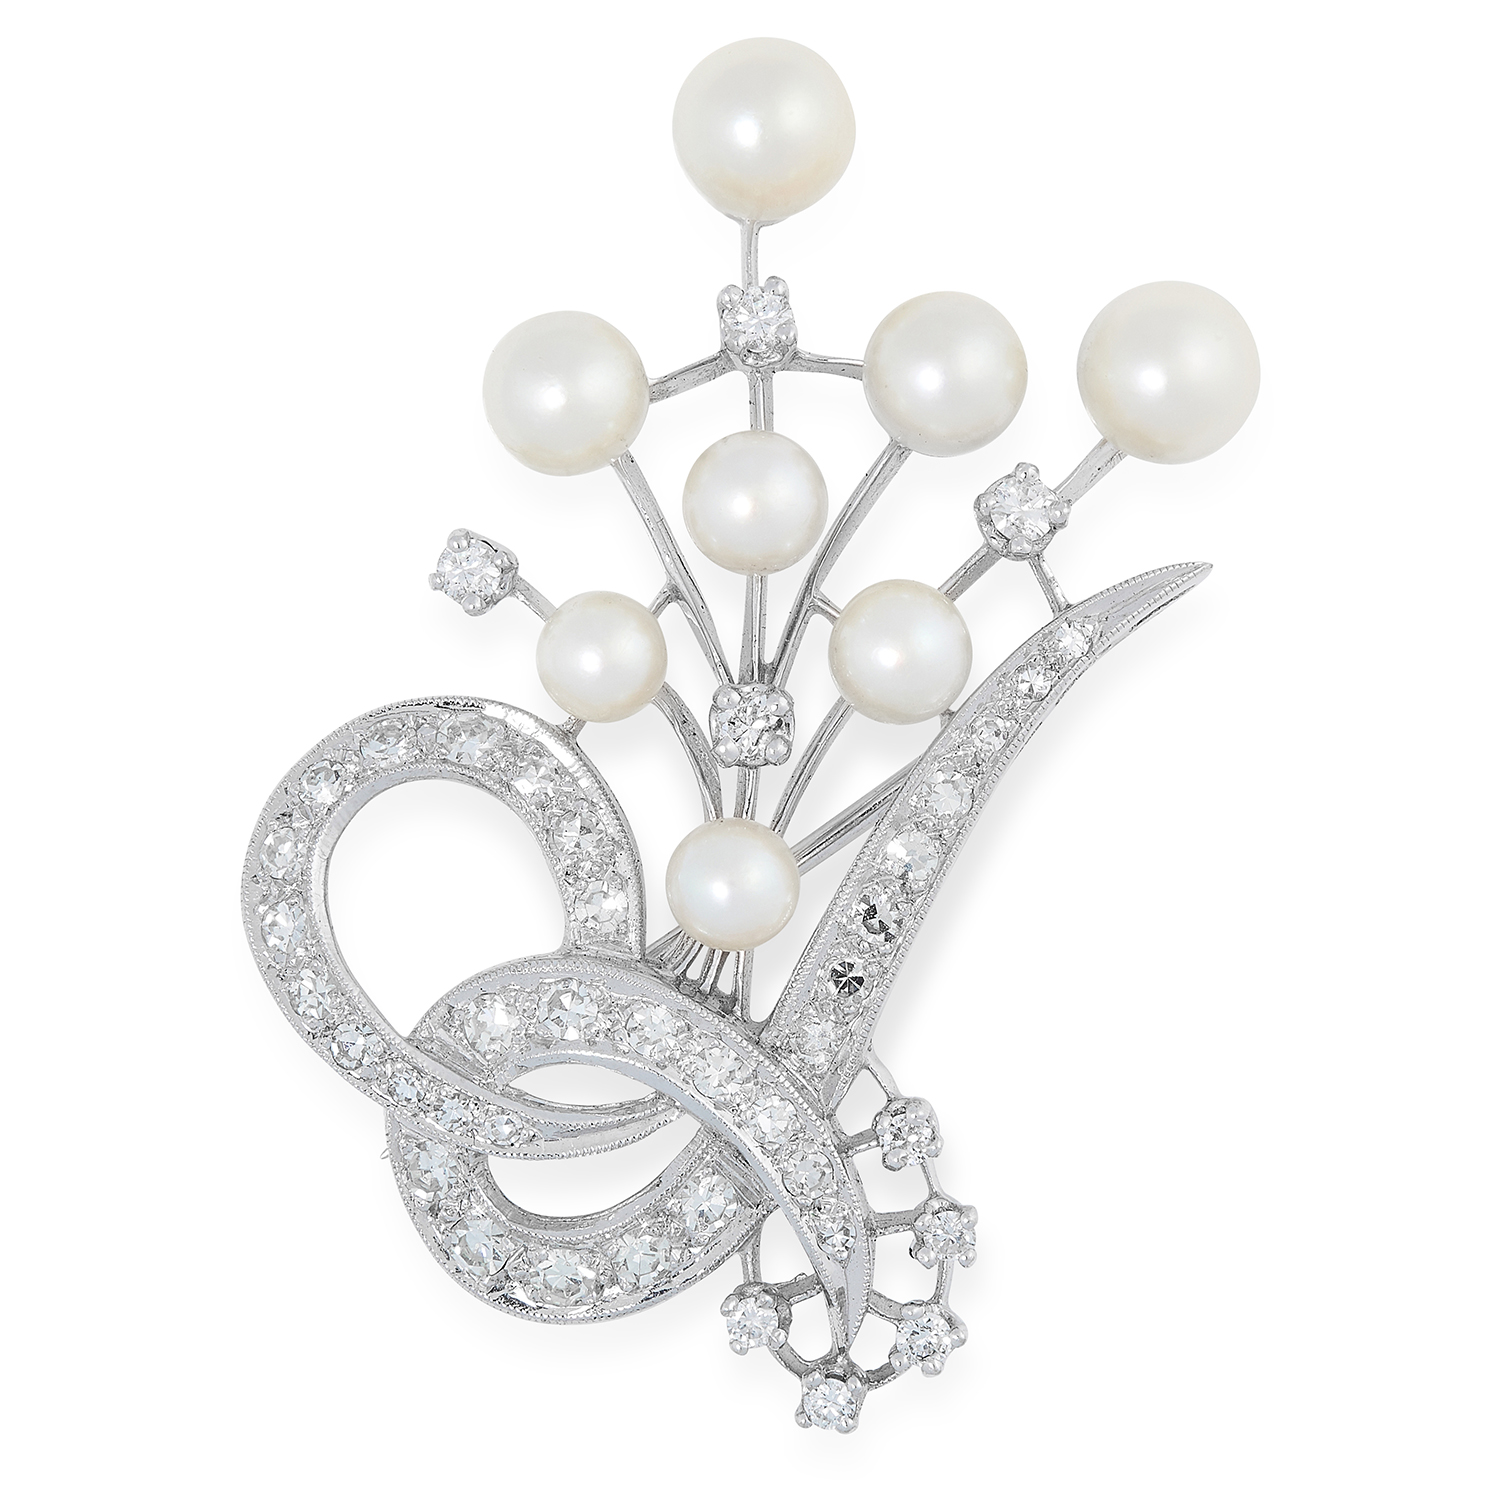 PEARL AND DIAMOND SPRAY BROOCH set with pearls and round cut diamonds, 4.5cm, 8.8g.